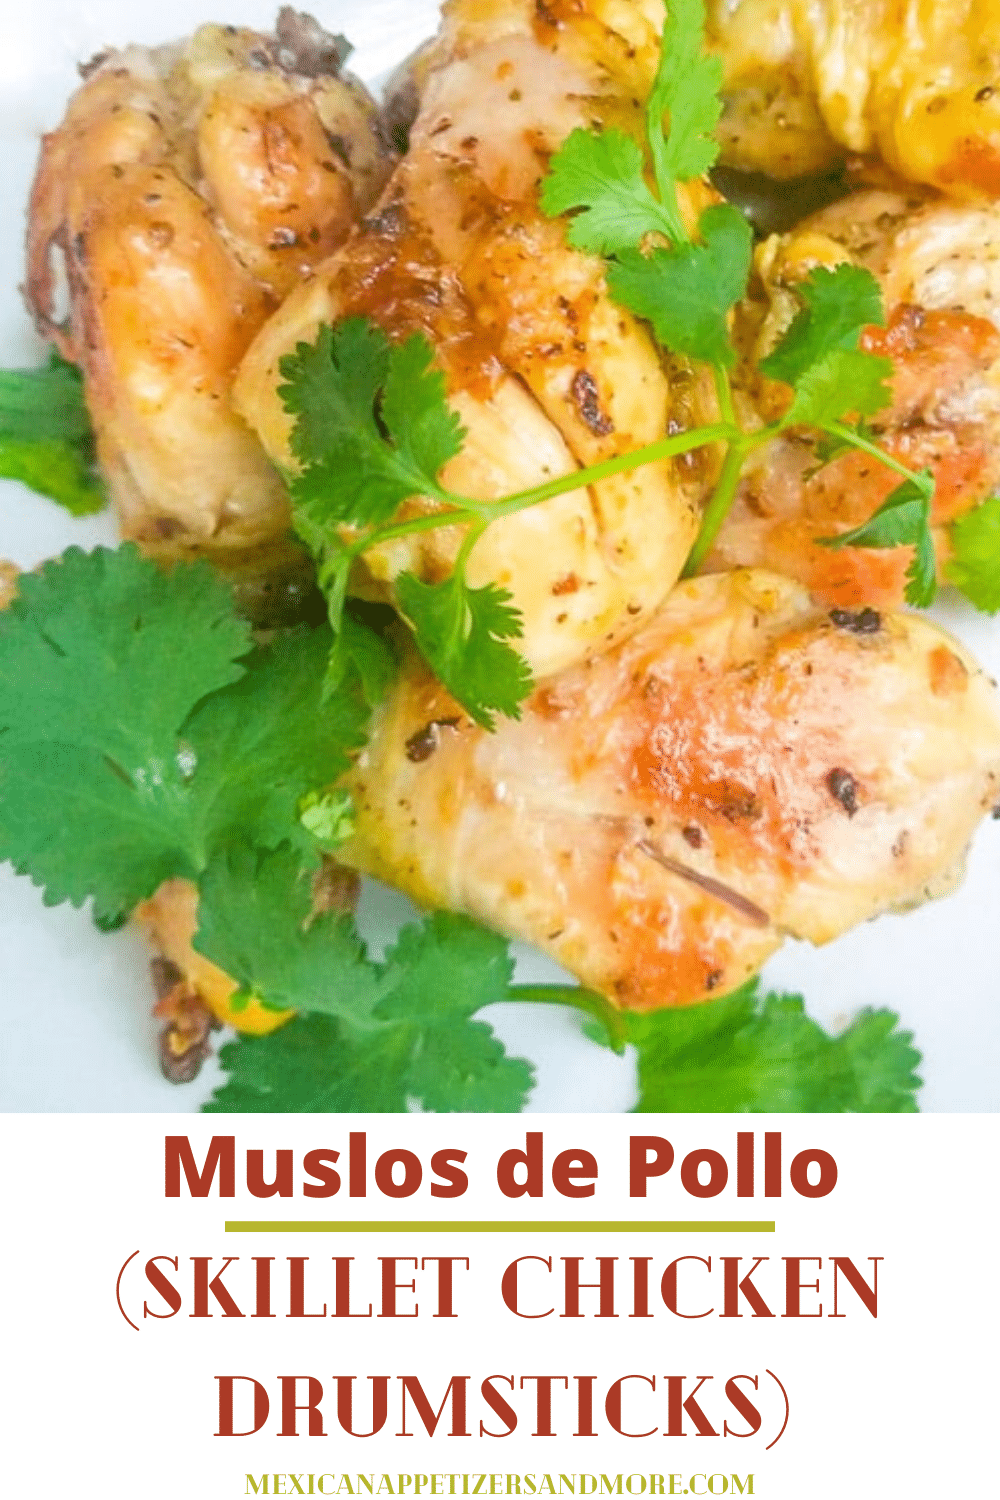 Muslos de Pollo (Skillet Chicken Drumsticks)